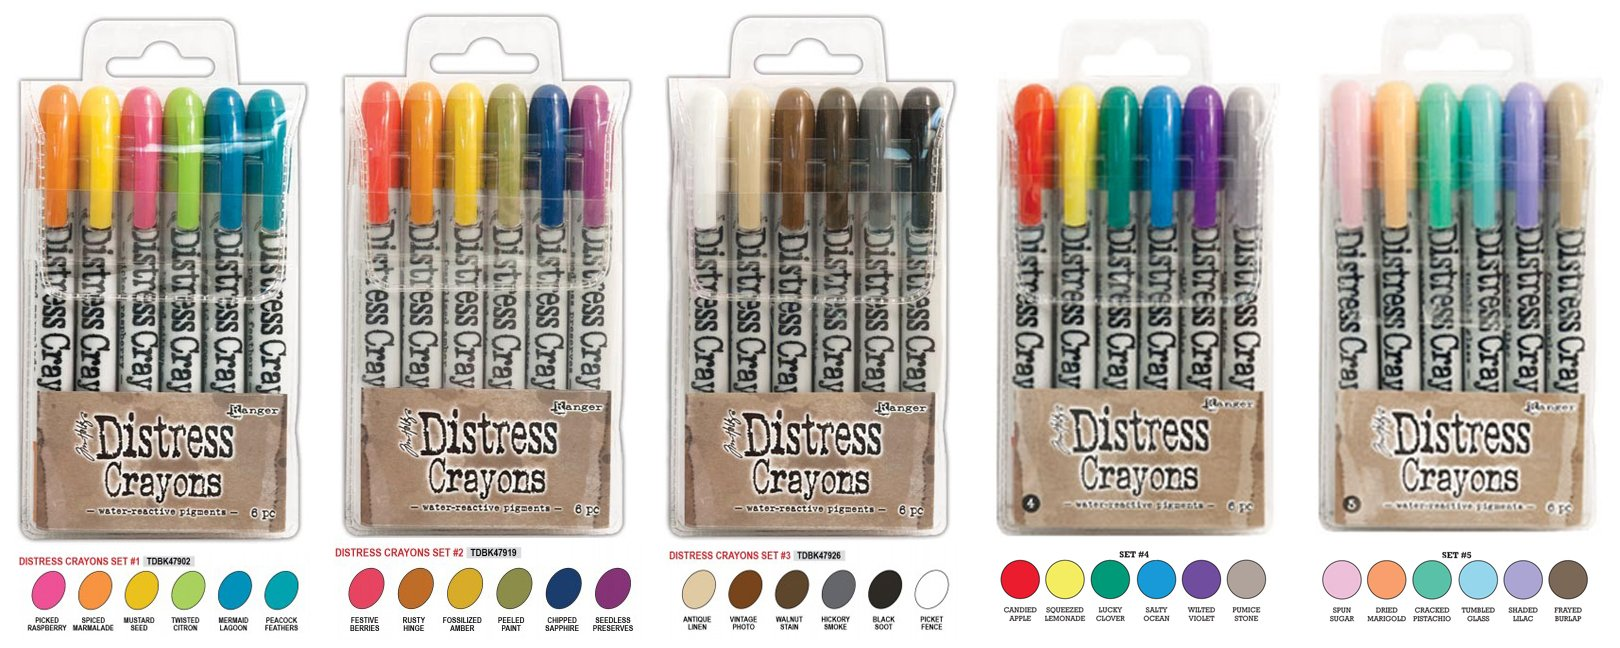 Ranger Tim Holtz Distress Crayons Bundle: Sets 1, 2, 3, 4, and 5